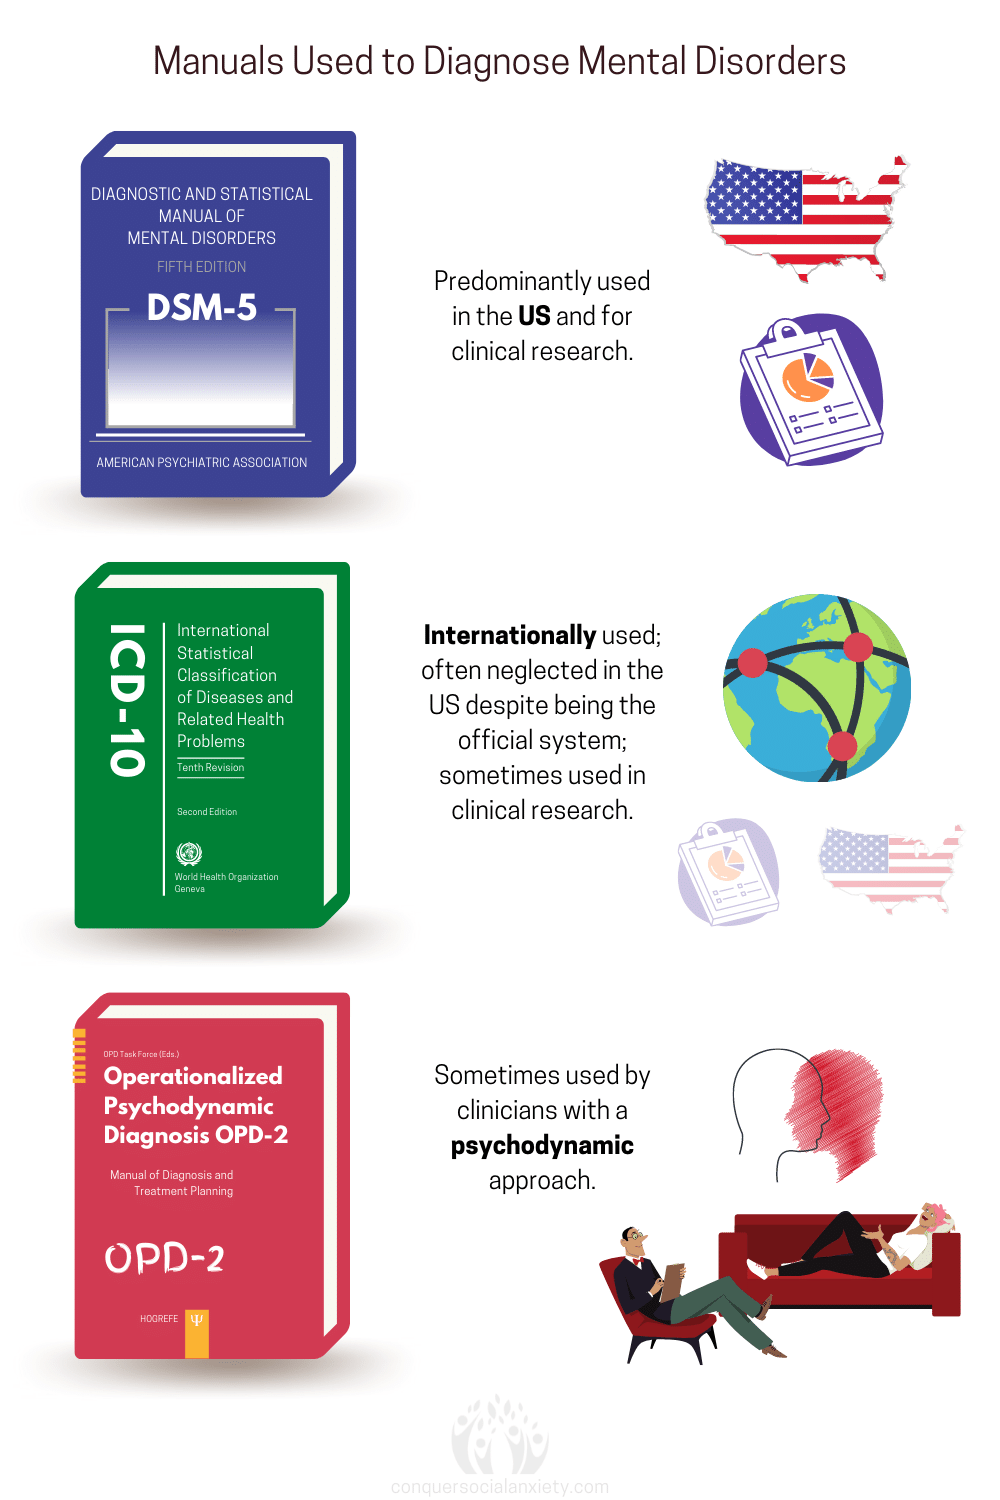 The DSM-5 is primarily used in the United States and for research purposes. The ICD-10 is internationally used to diagnose mental disorders. The OPD-2 is sometimes used by psychodynamic therapists to diagnose psychiatric conditions according to psychodynamic theory.